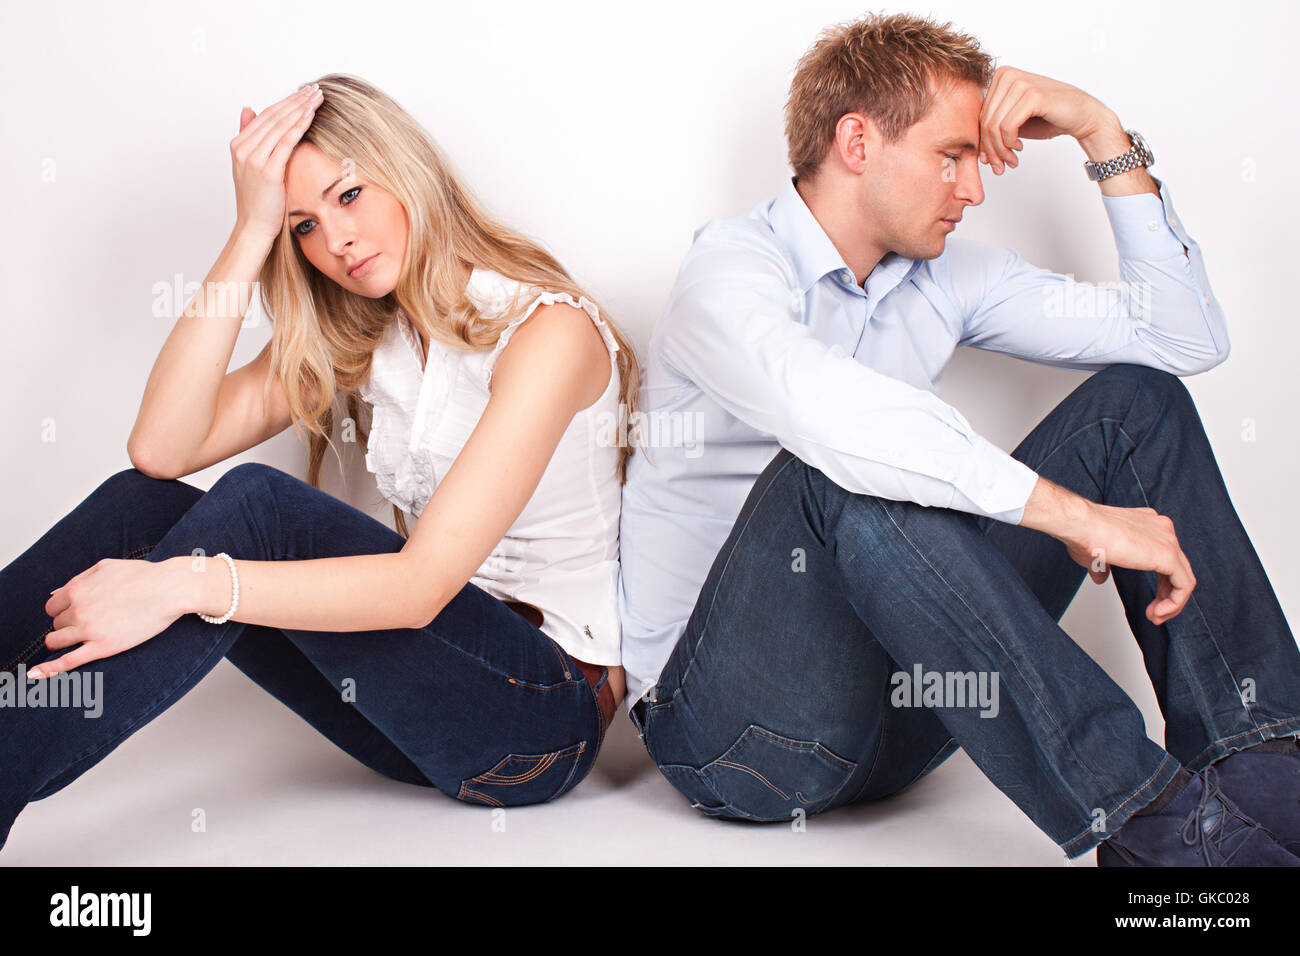 relationship problems - Stock Image